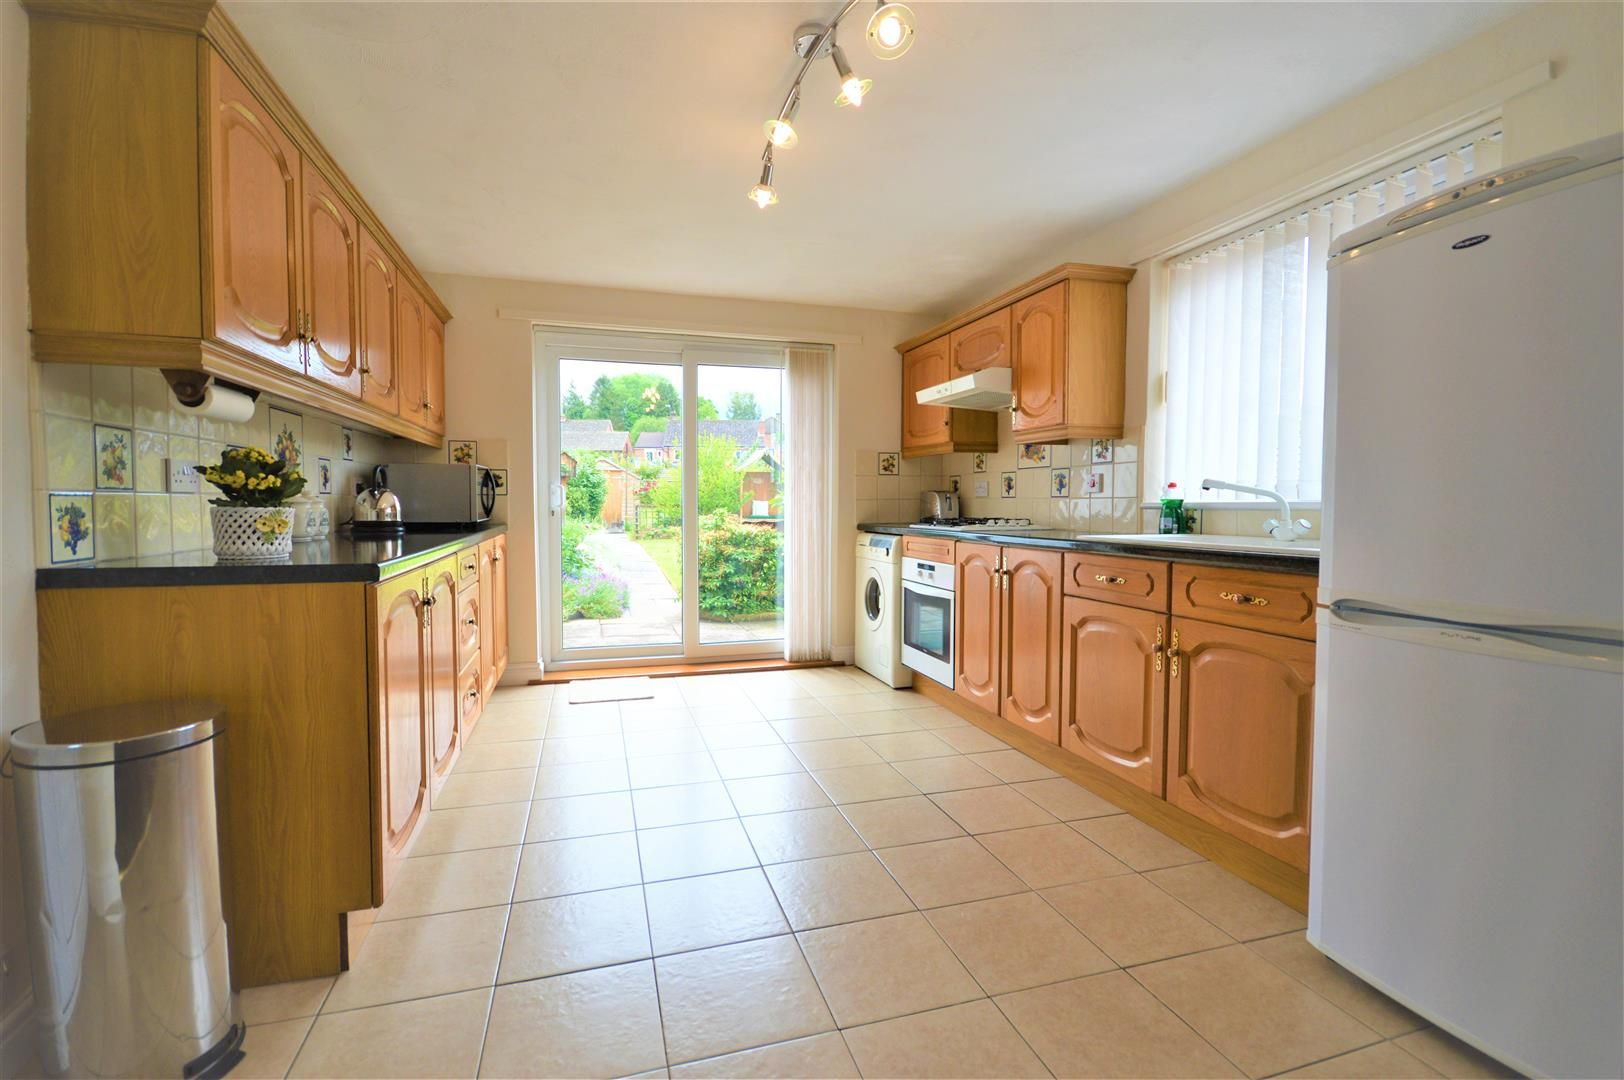 2 bed semi-detached-bungalow for sale in Leominster 3